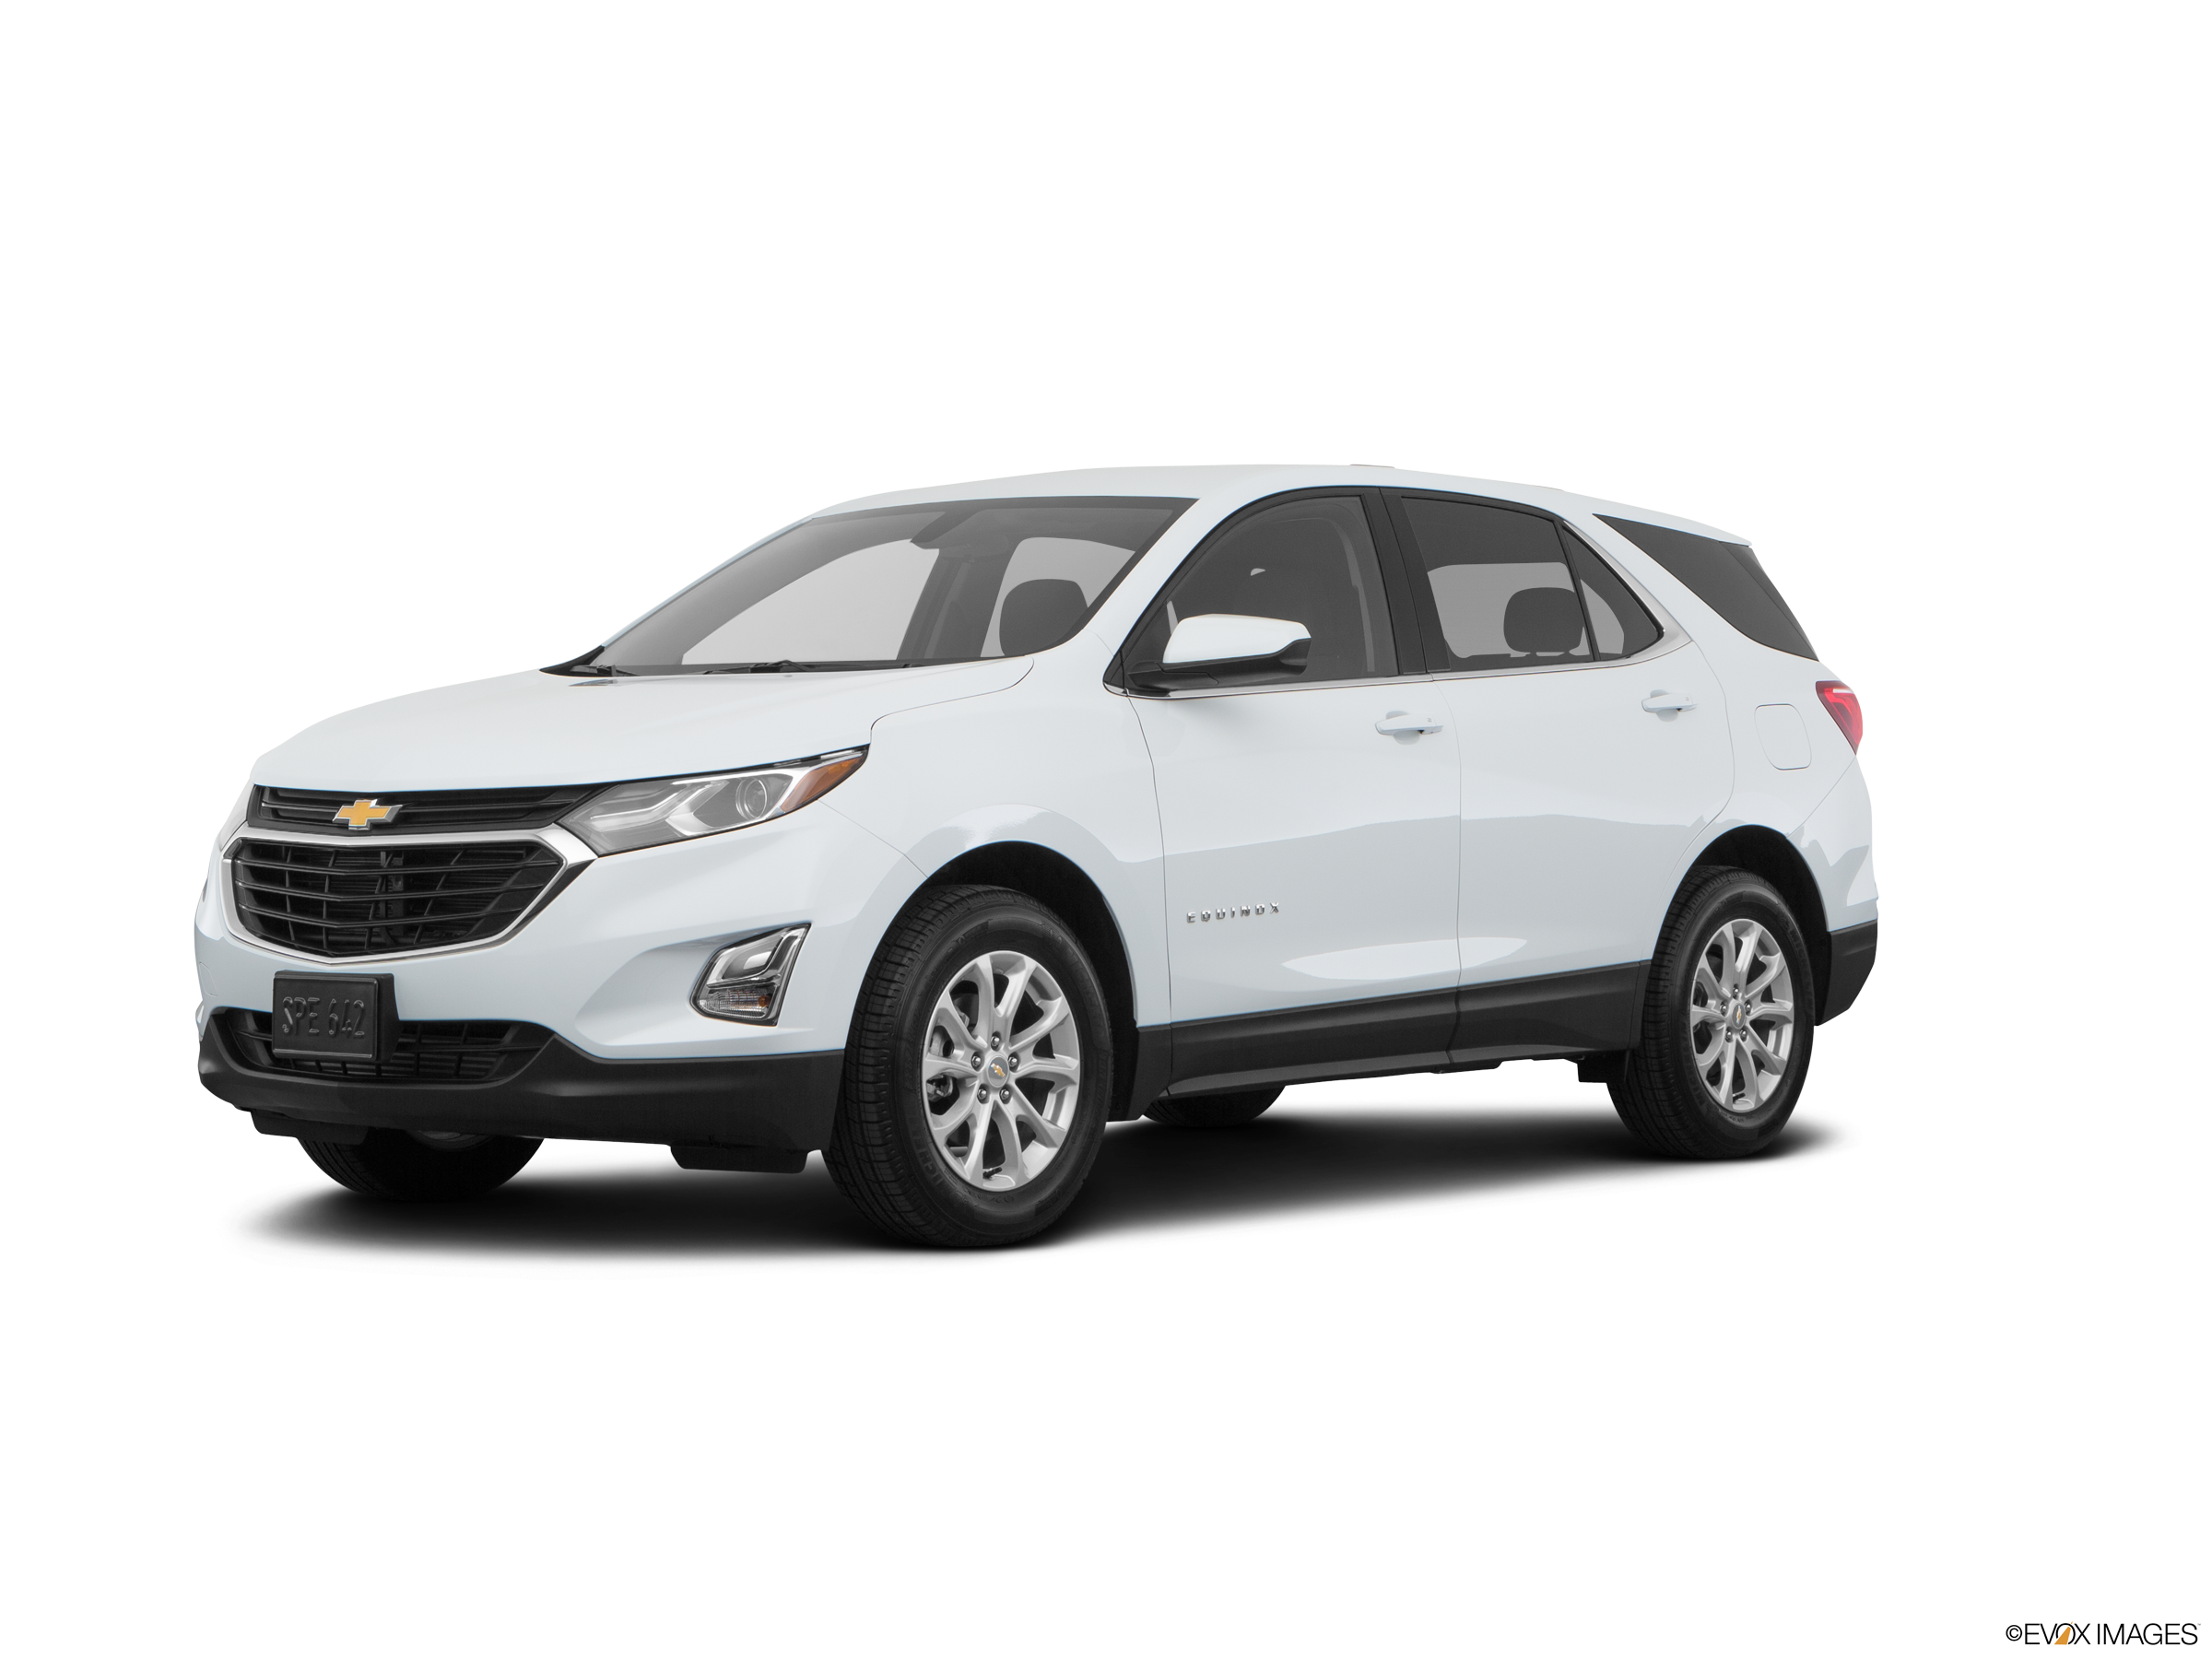 25 Best-Selling SUVs of 2018 - Chevrolet Equinox